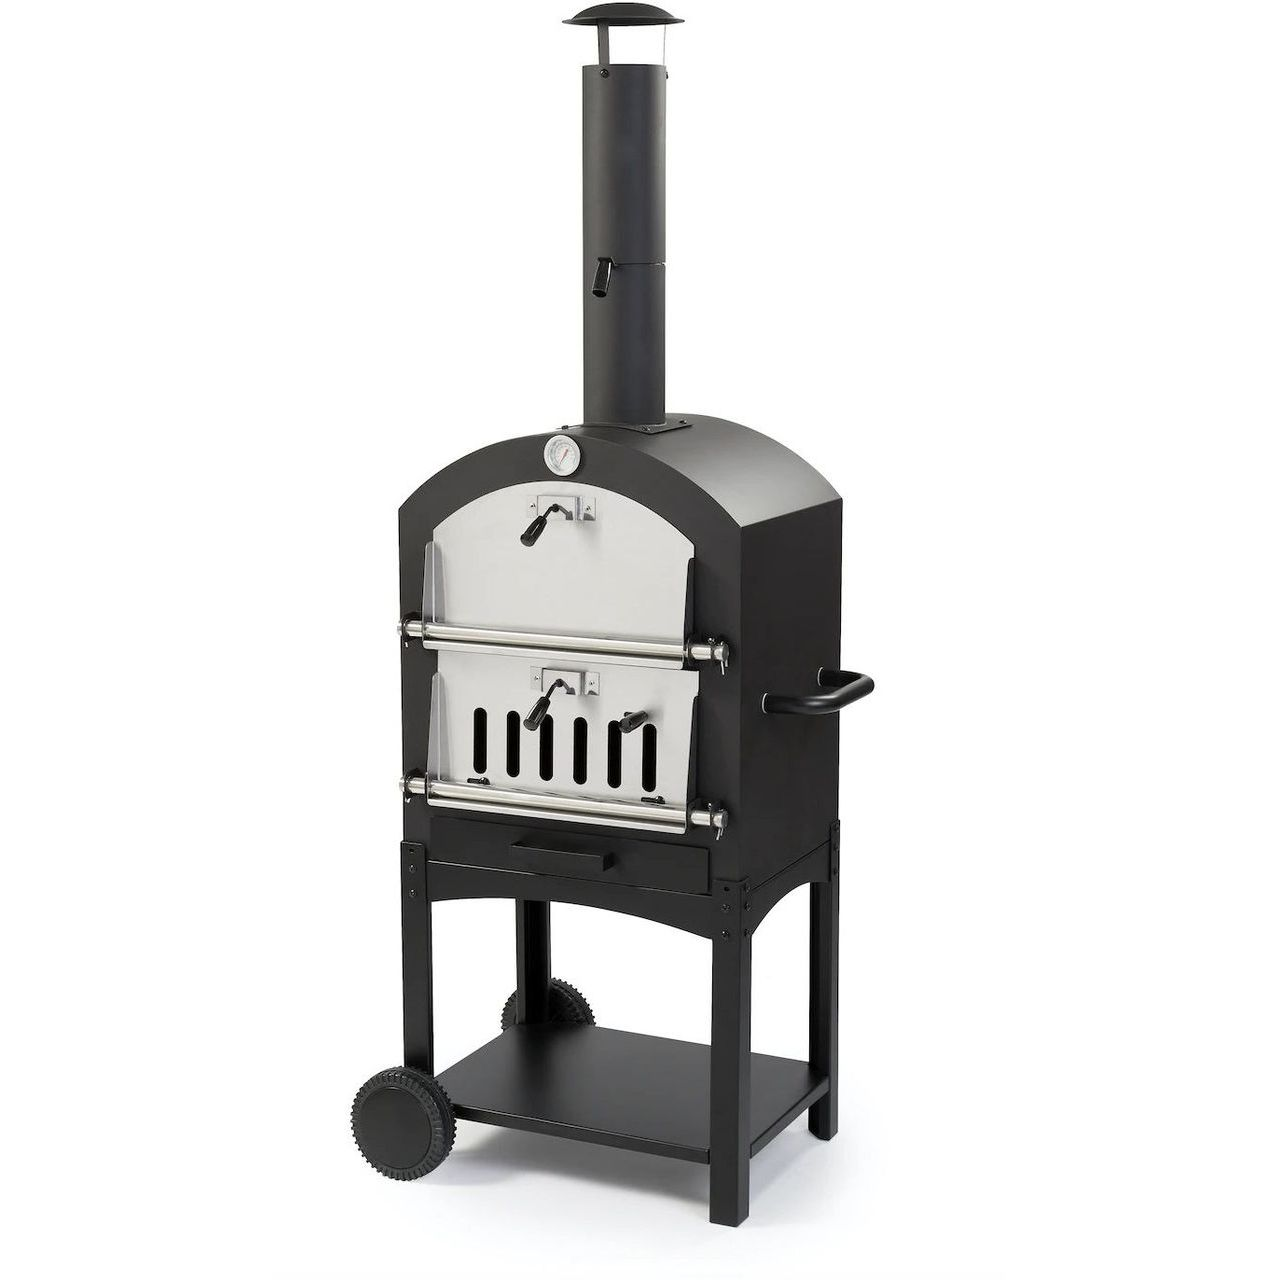 WPPO Stand Alone Eco Wood Fired Garden Oven With Pizza Stone